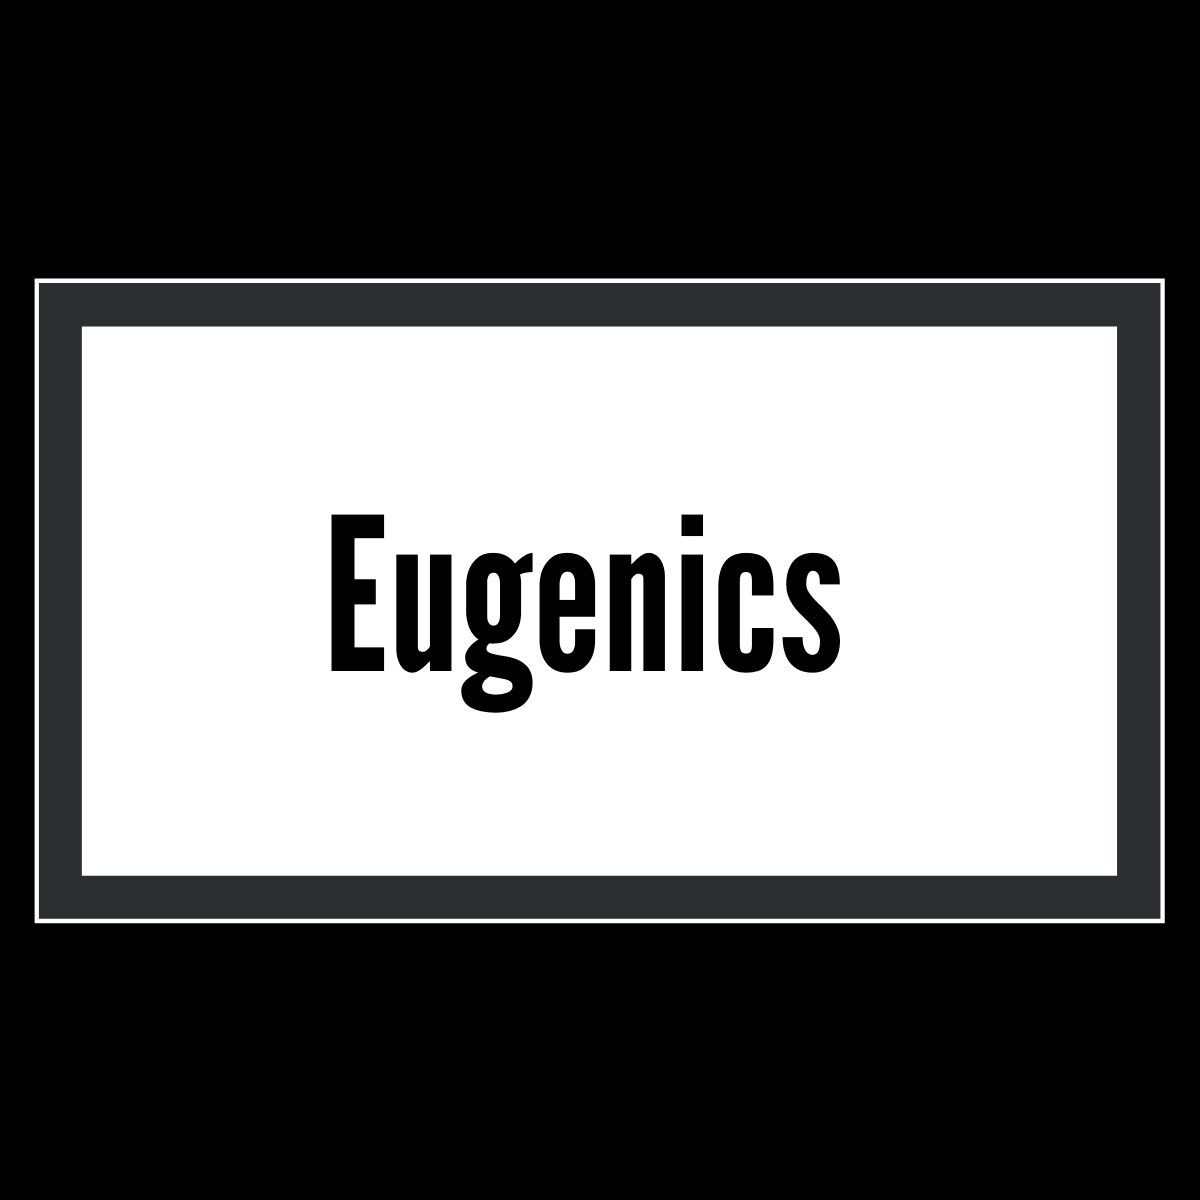 A black box with a white center that says Eugenics